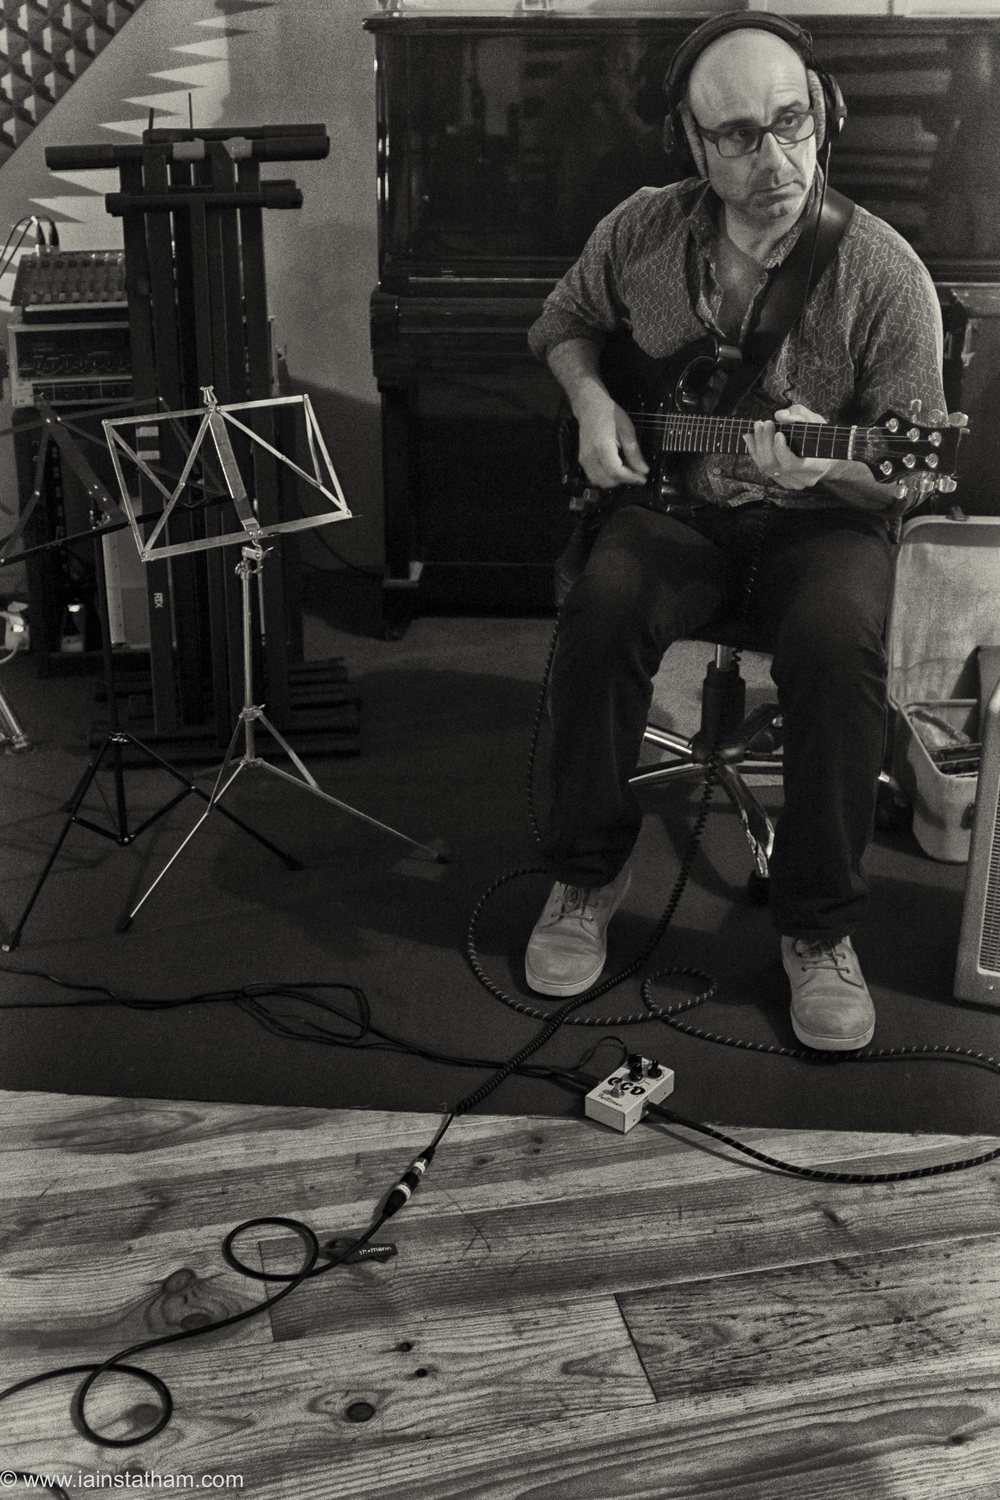 fr - music - mahognay - studio - bw - august 15-5.jpg